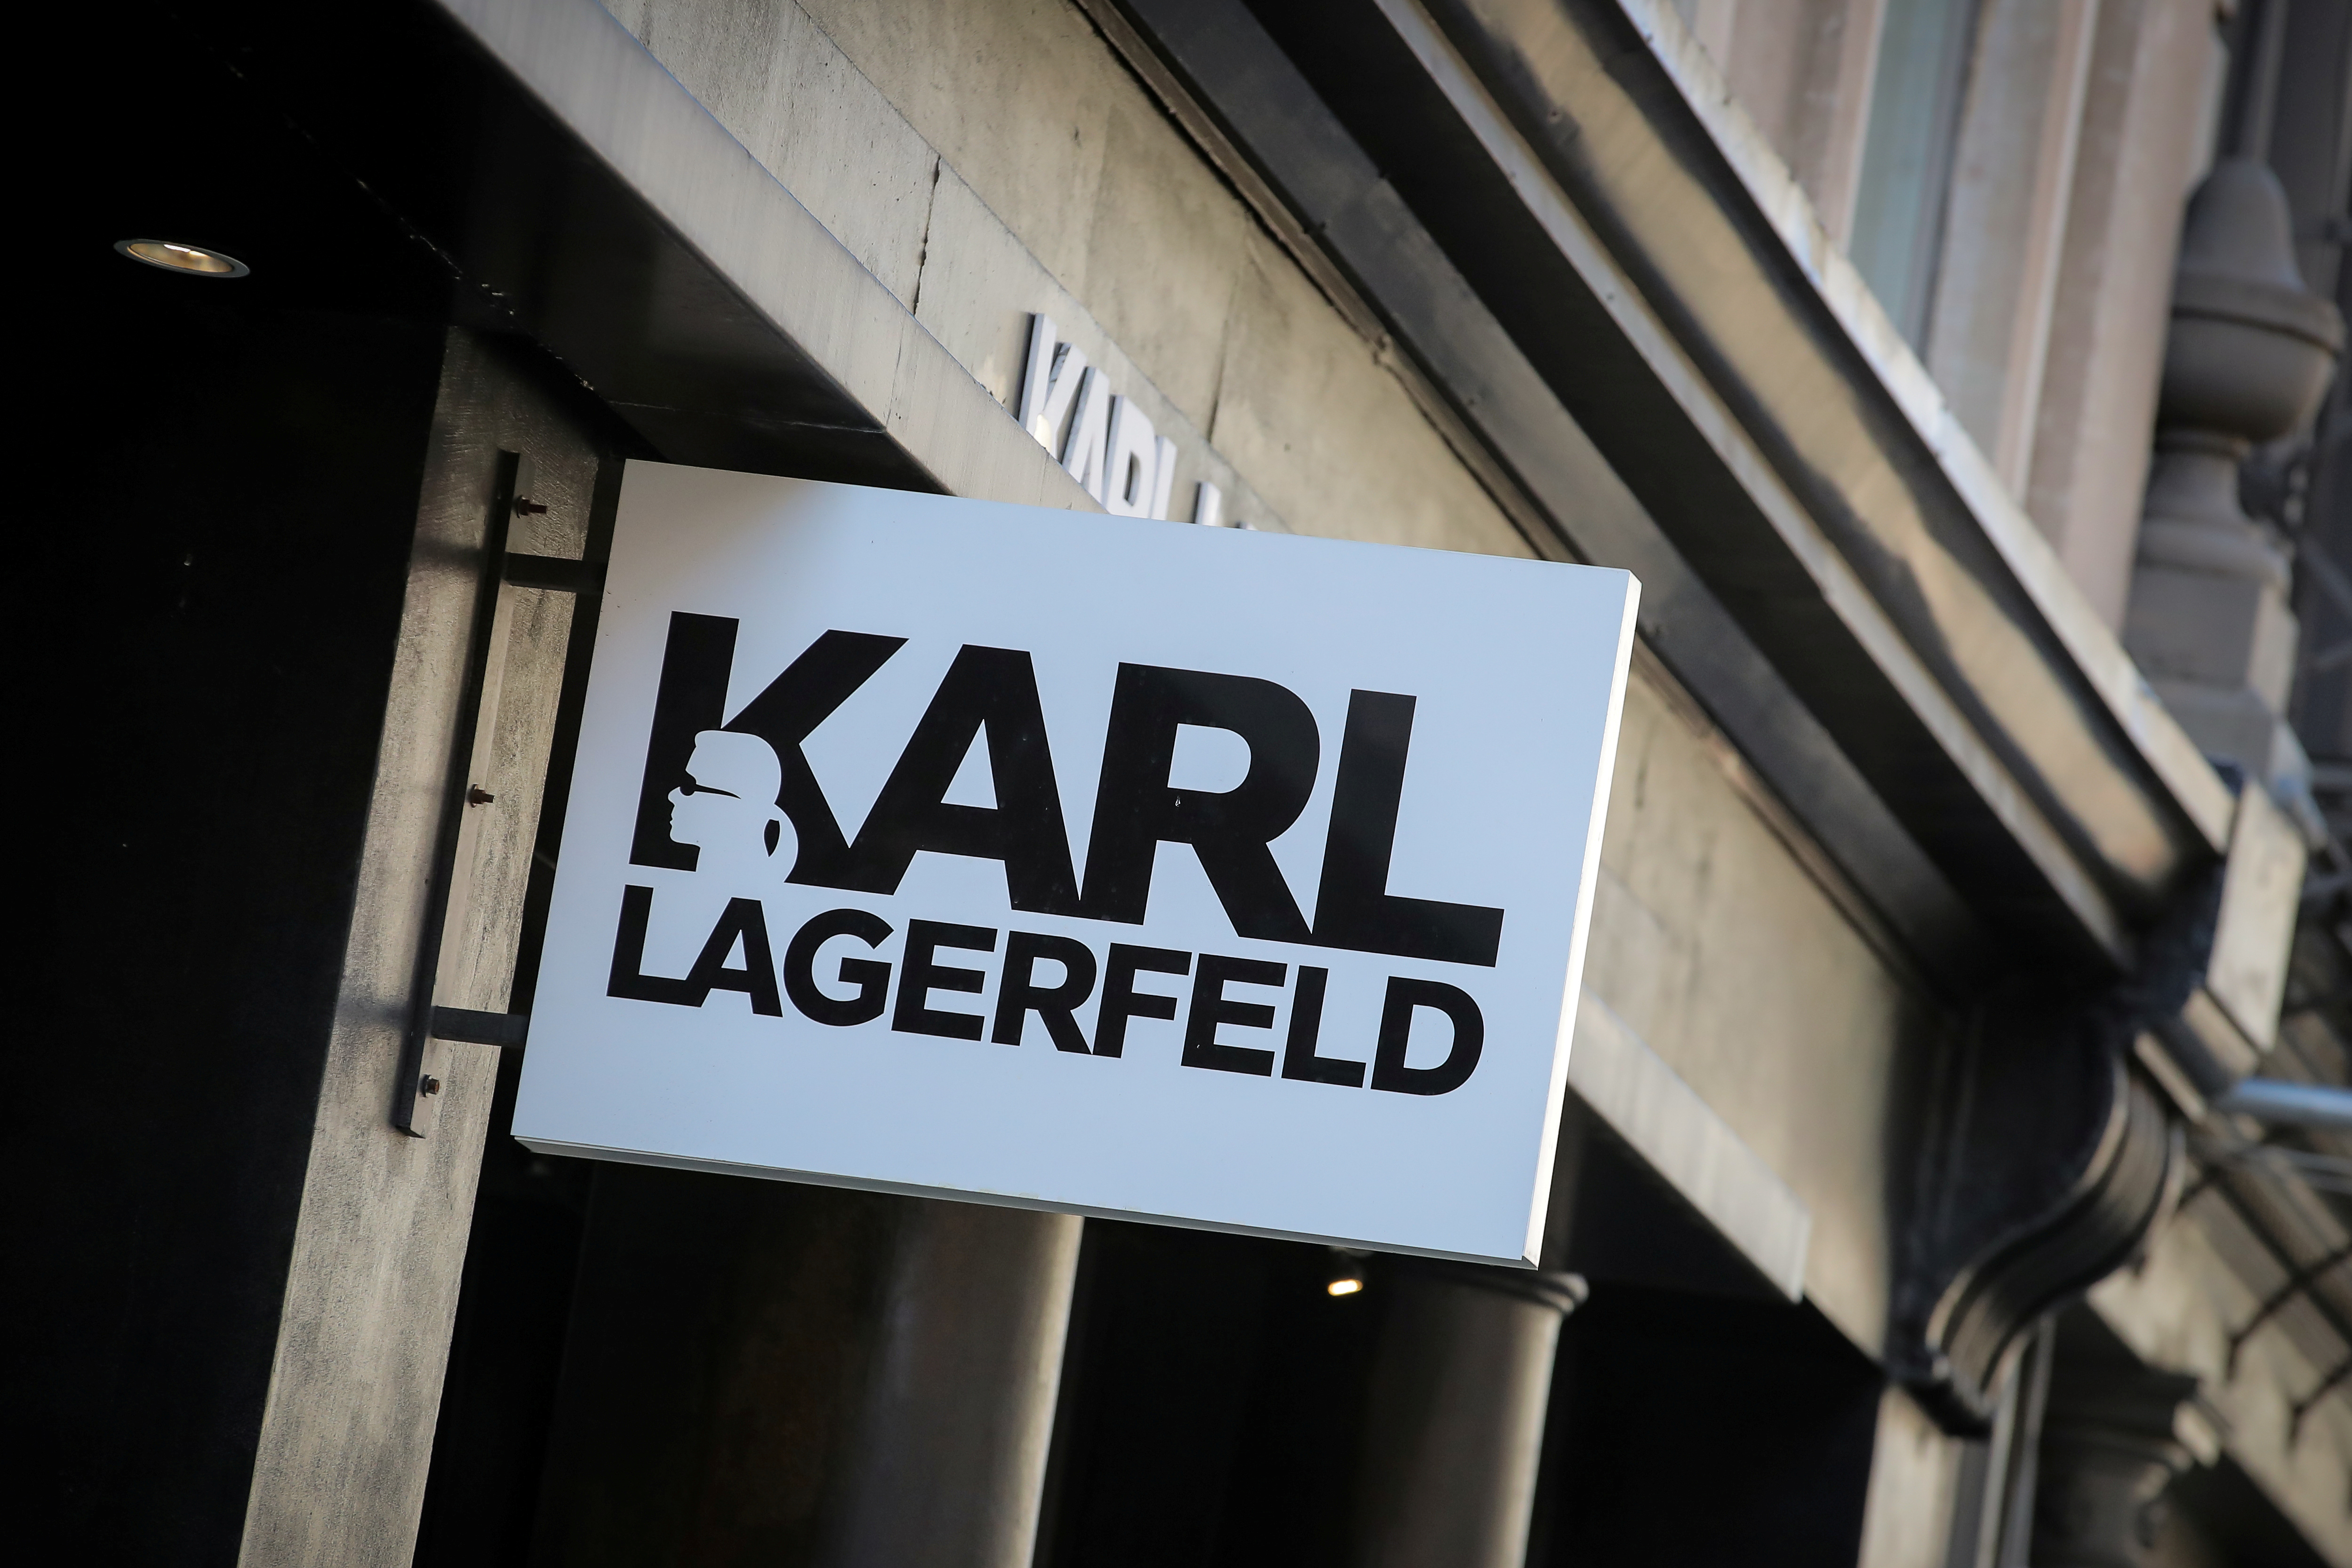 A sign and logo are seen on the Karl Lagerfeld store in New York City, U.S., February 19, 2019. REUTERS/Brendan McDermid/File Photo